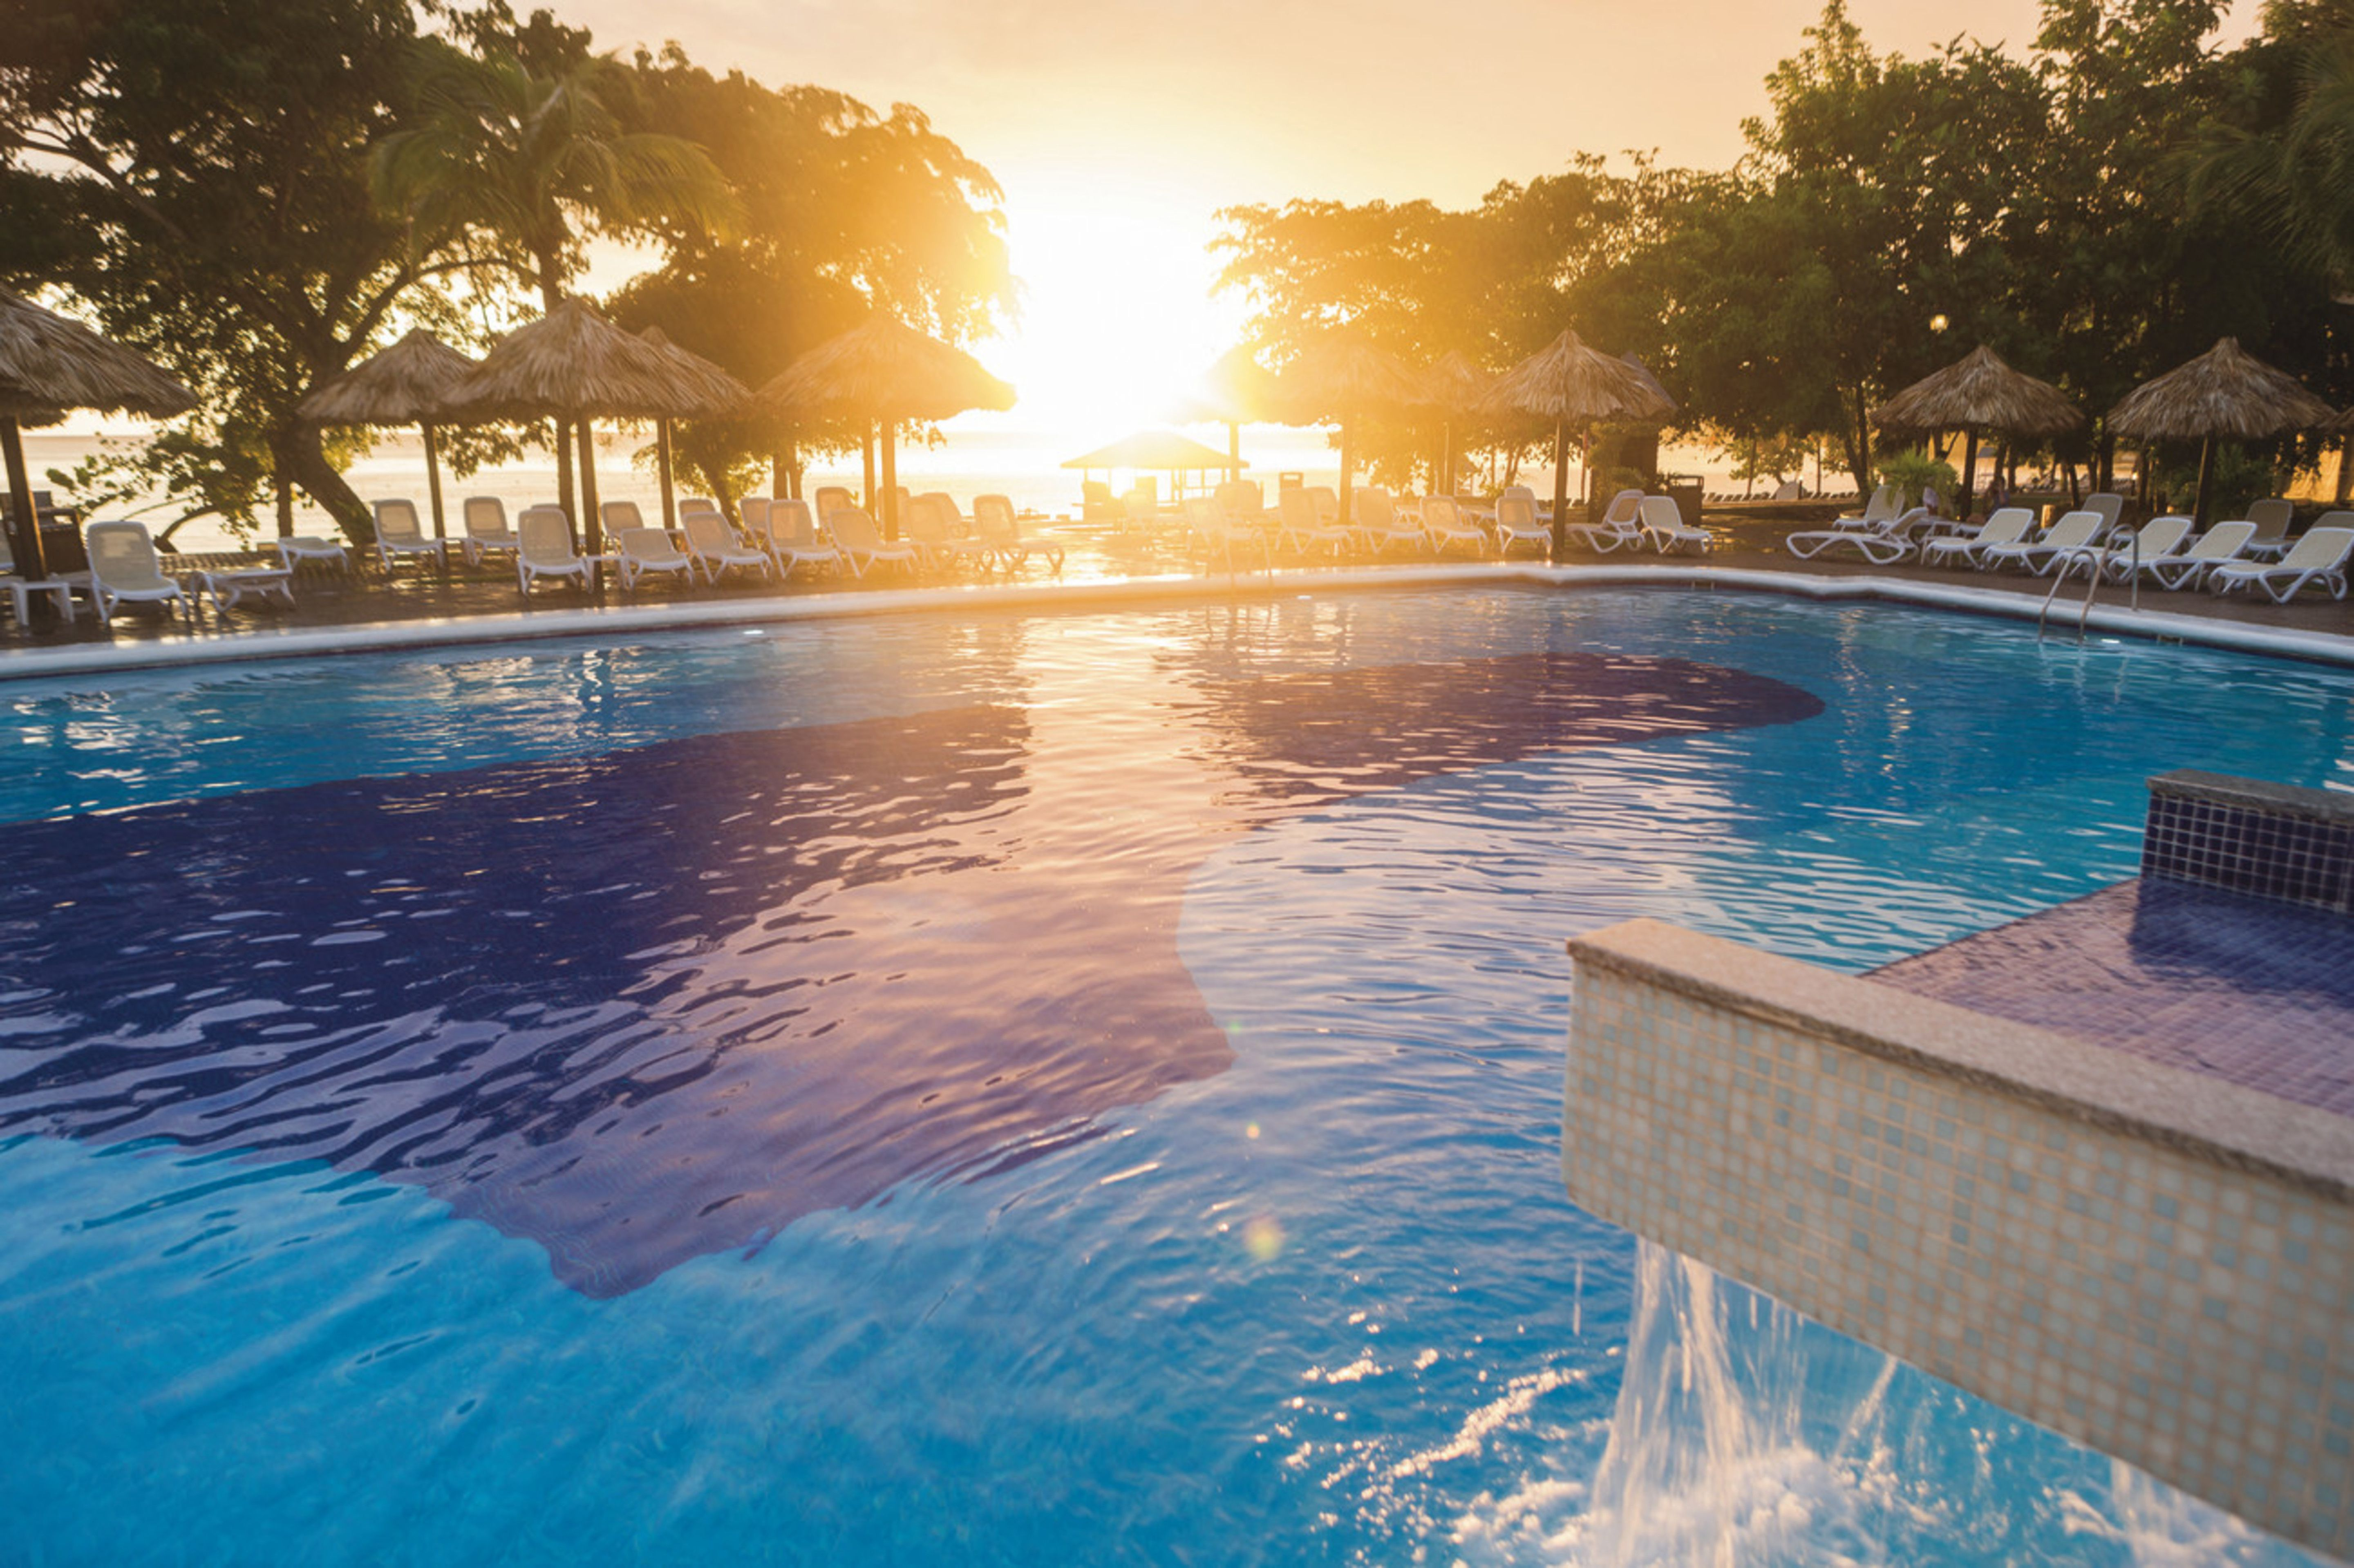 sunset at clubhotel riu negril all inclusive 24h hotel. Black Bedroom Furniture Sets. Home Design Ideas